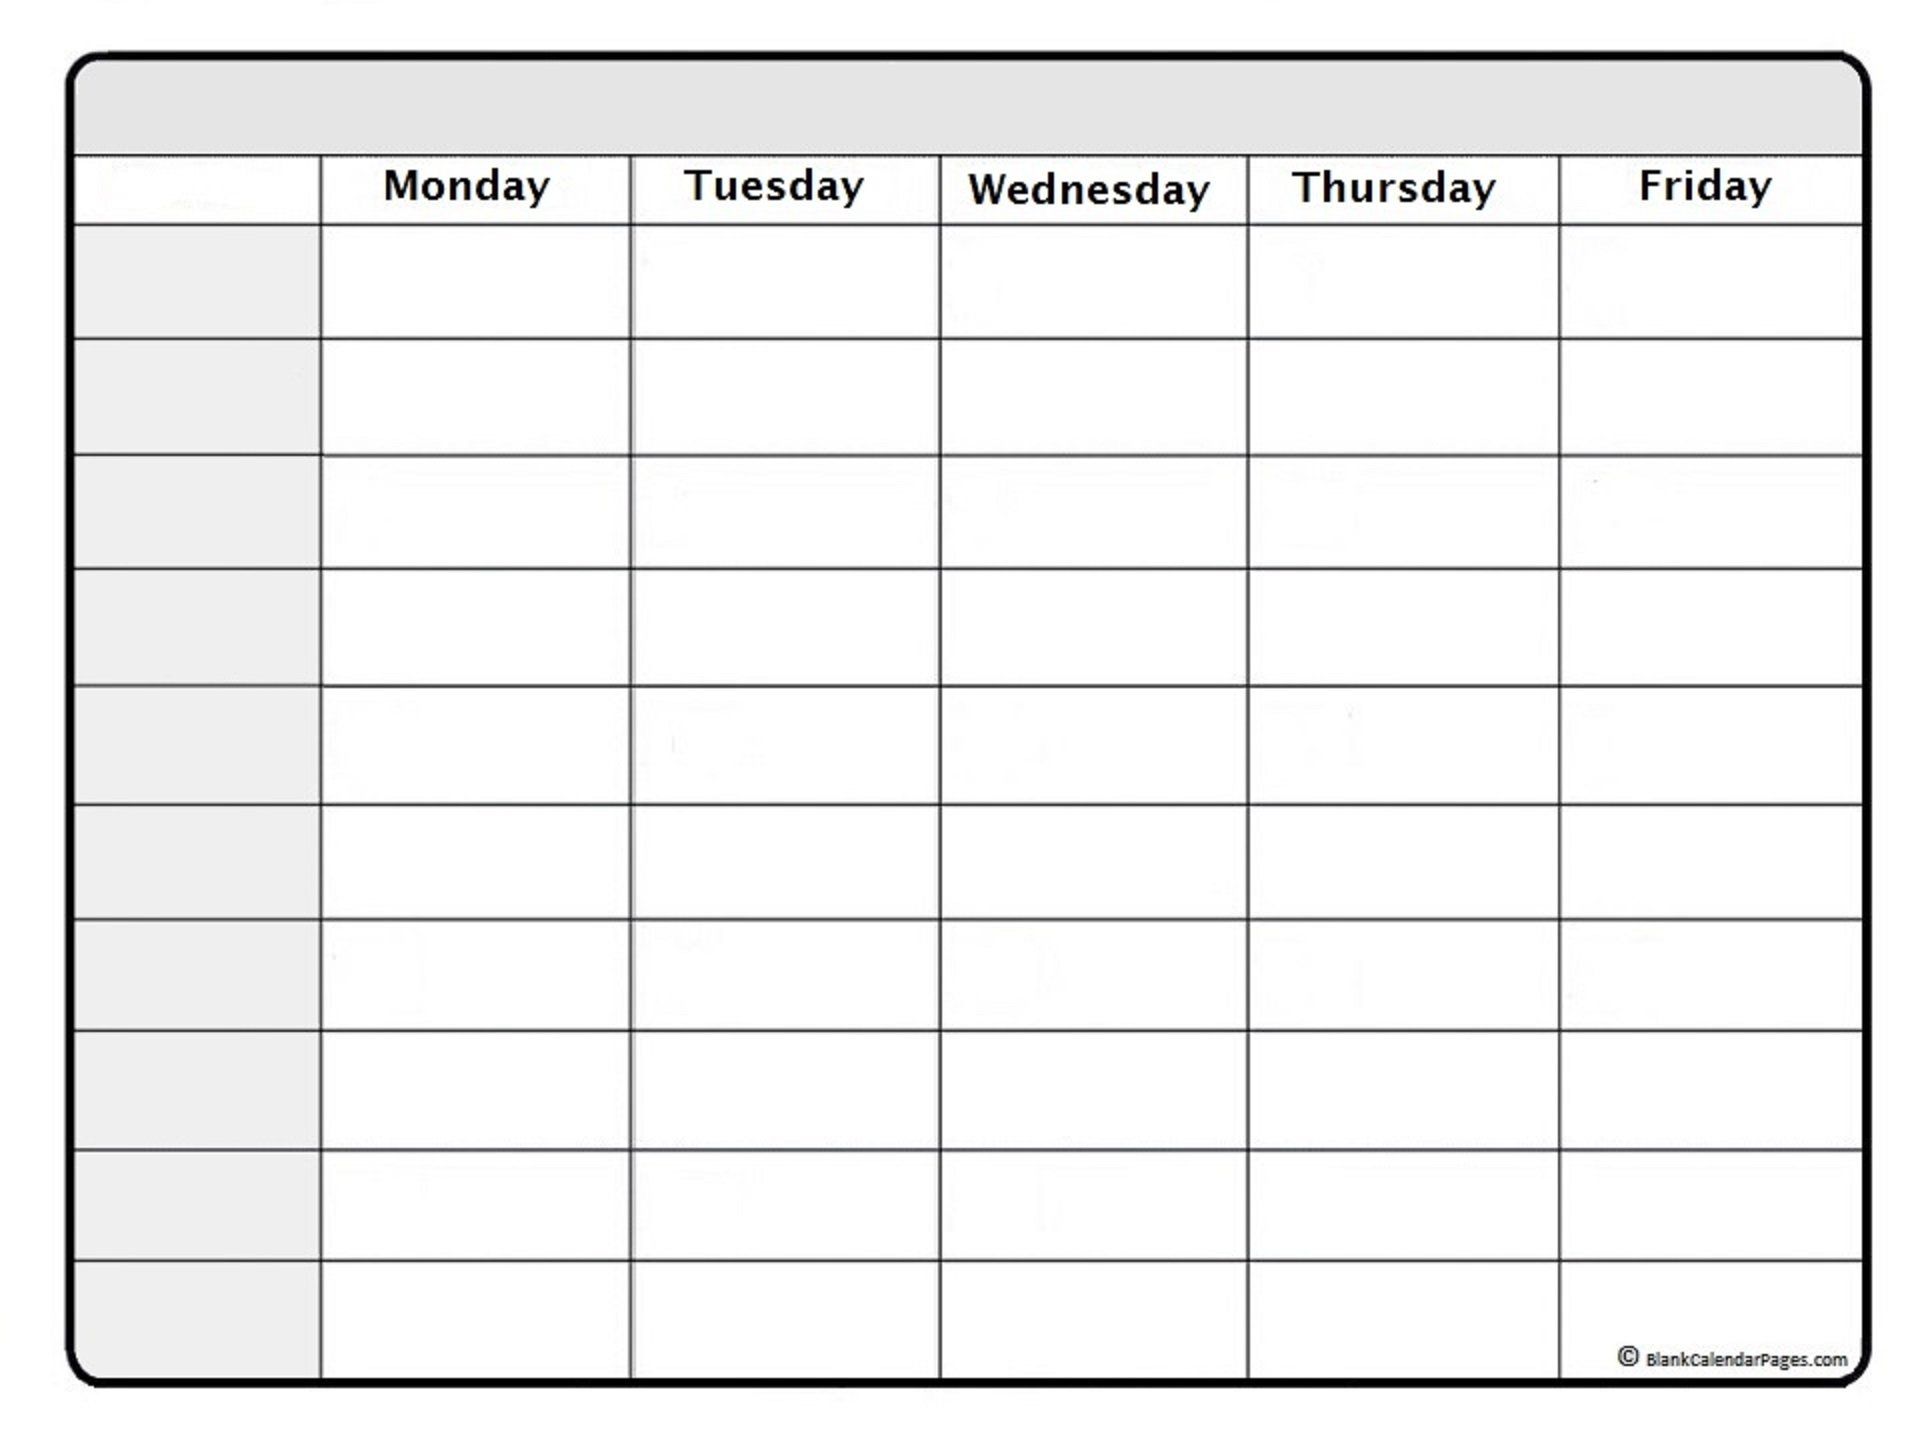 Blank Weekly Schedule Template Printable - Calendar throughout Blank Month Planner Template Graphics